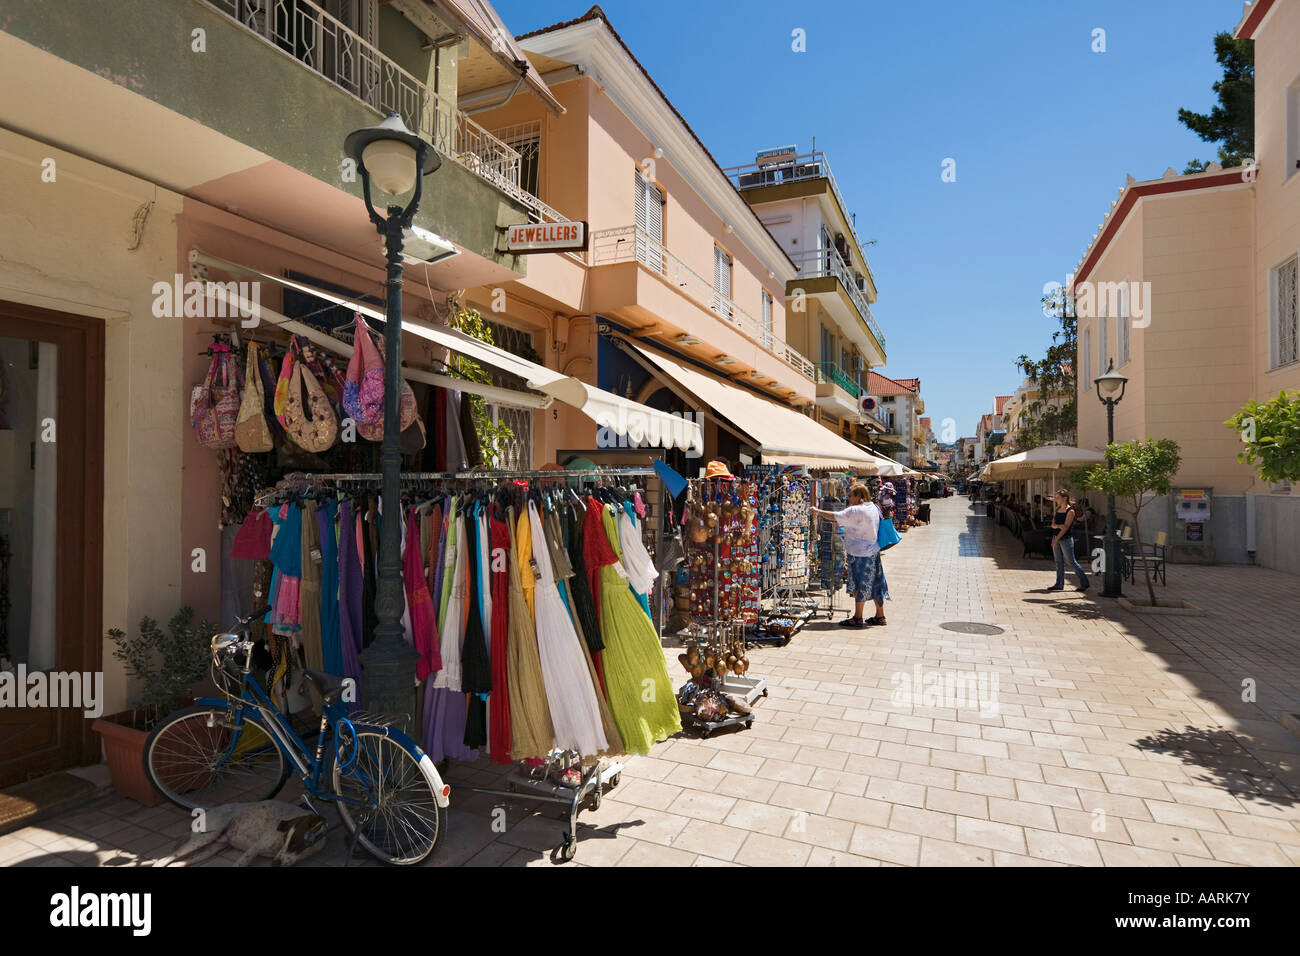 Shops on Lithostroto, Argostoli, Kefalonia, Ionian Islands, Greece Stock Photo